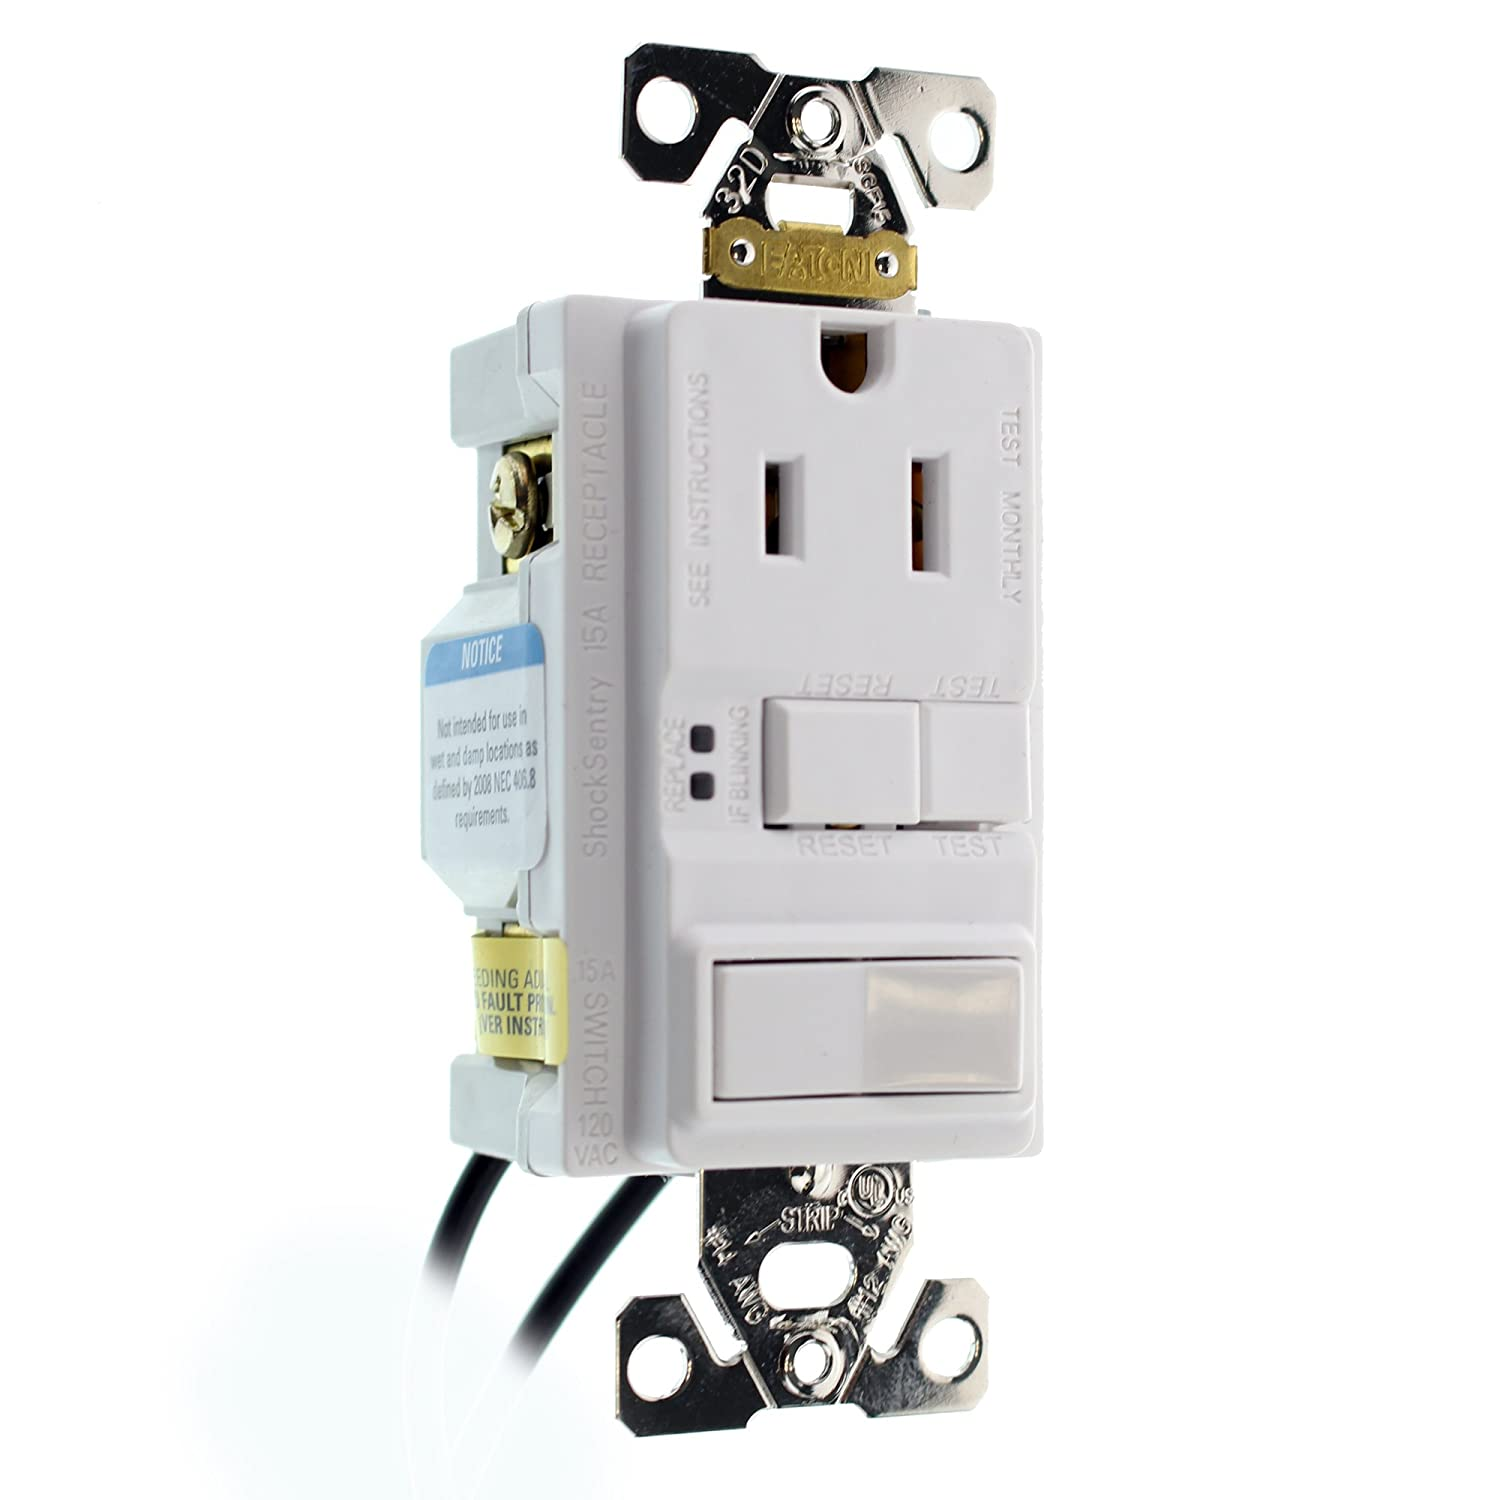 Hubbell Gfspst15wz Combo Gfci Outlet 1p Switch Self Test 15 Amp Ground Fault Circuit Interrupter Safe Household And 120 Volt White